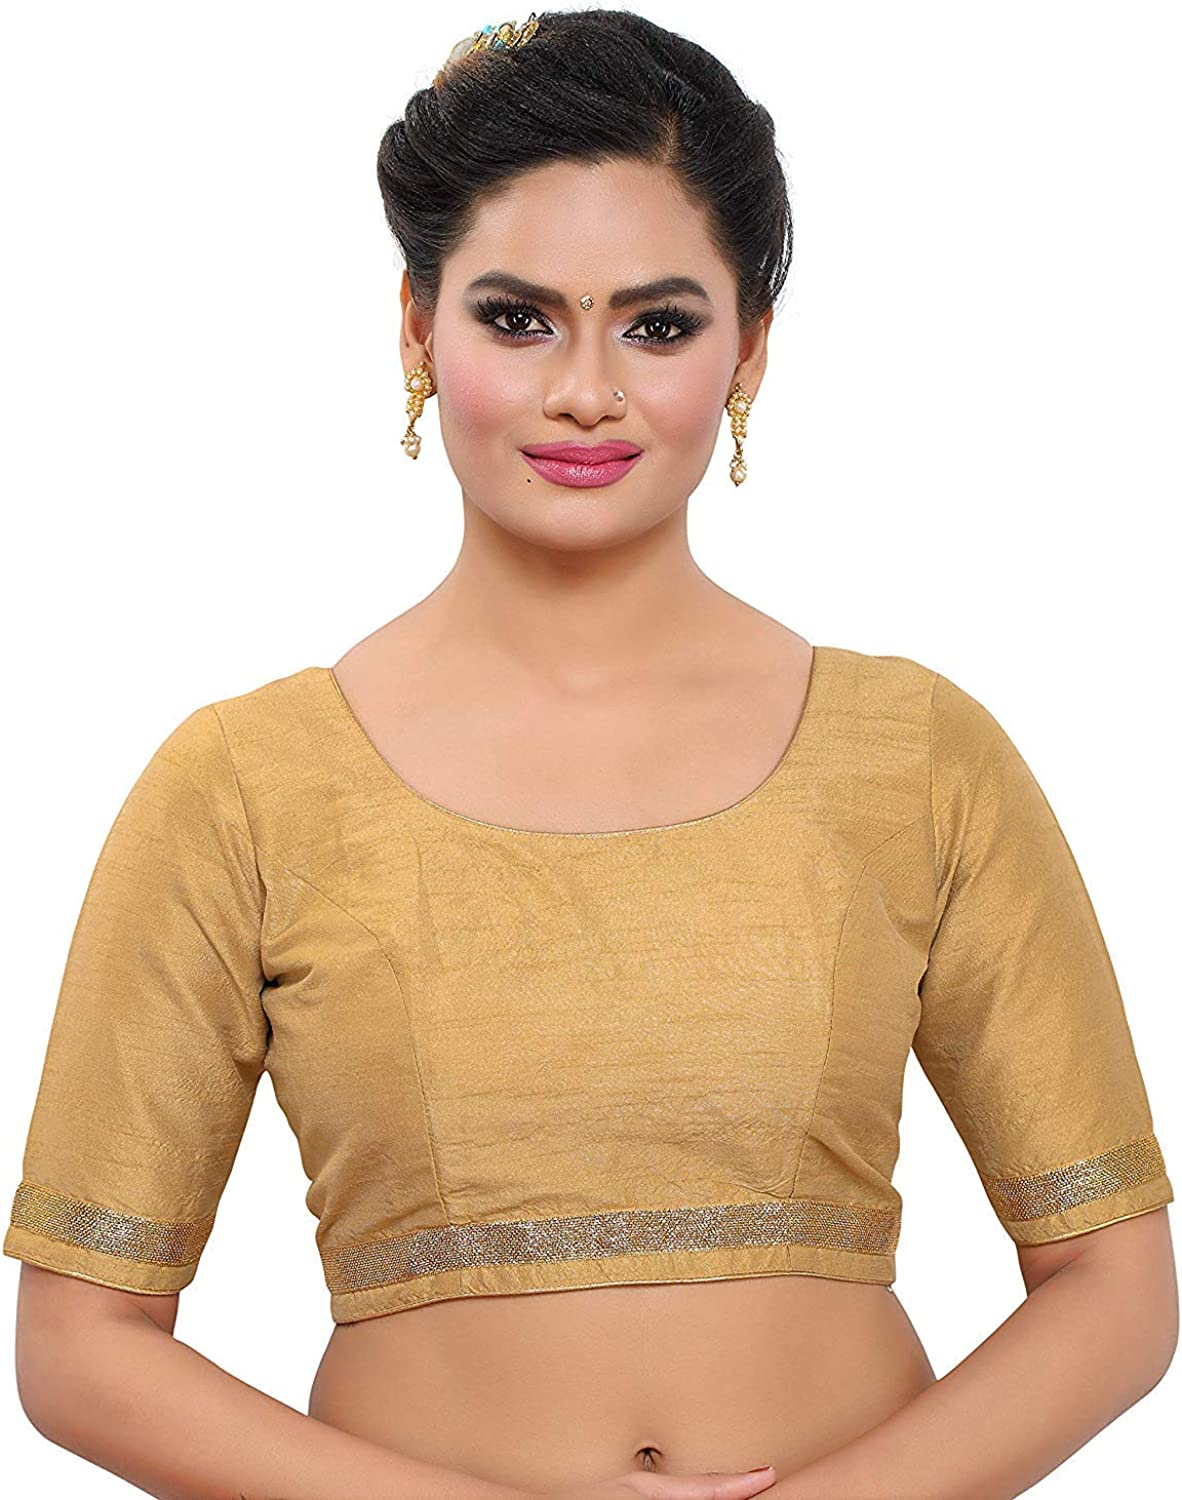 Black V neck and short roll up sleeves Silk Readymade Stitched Saree Blouse Tunic Crop Top Designer Women Indian Sari Choli Party Wear